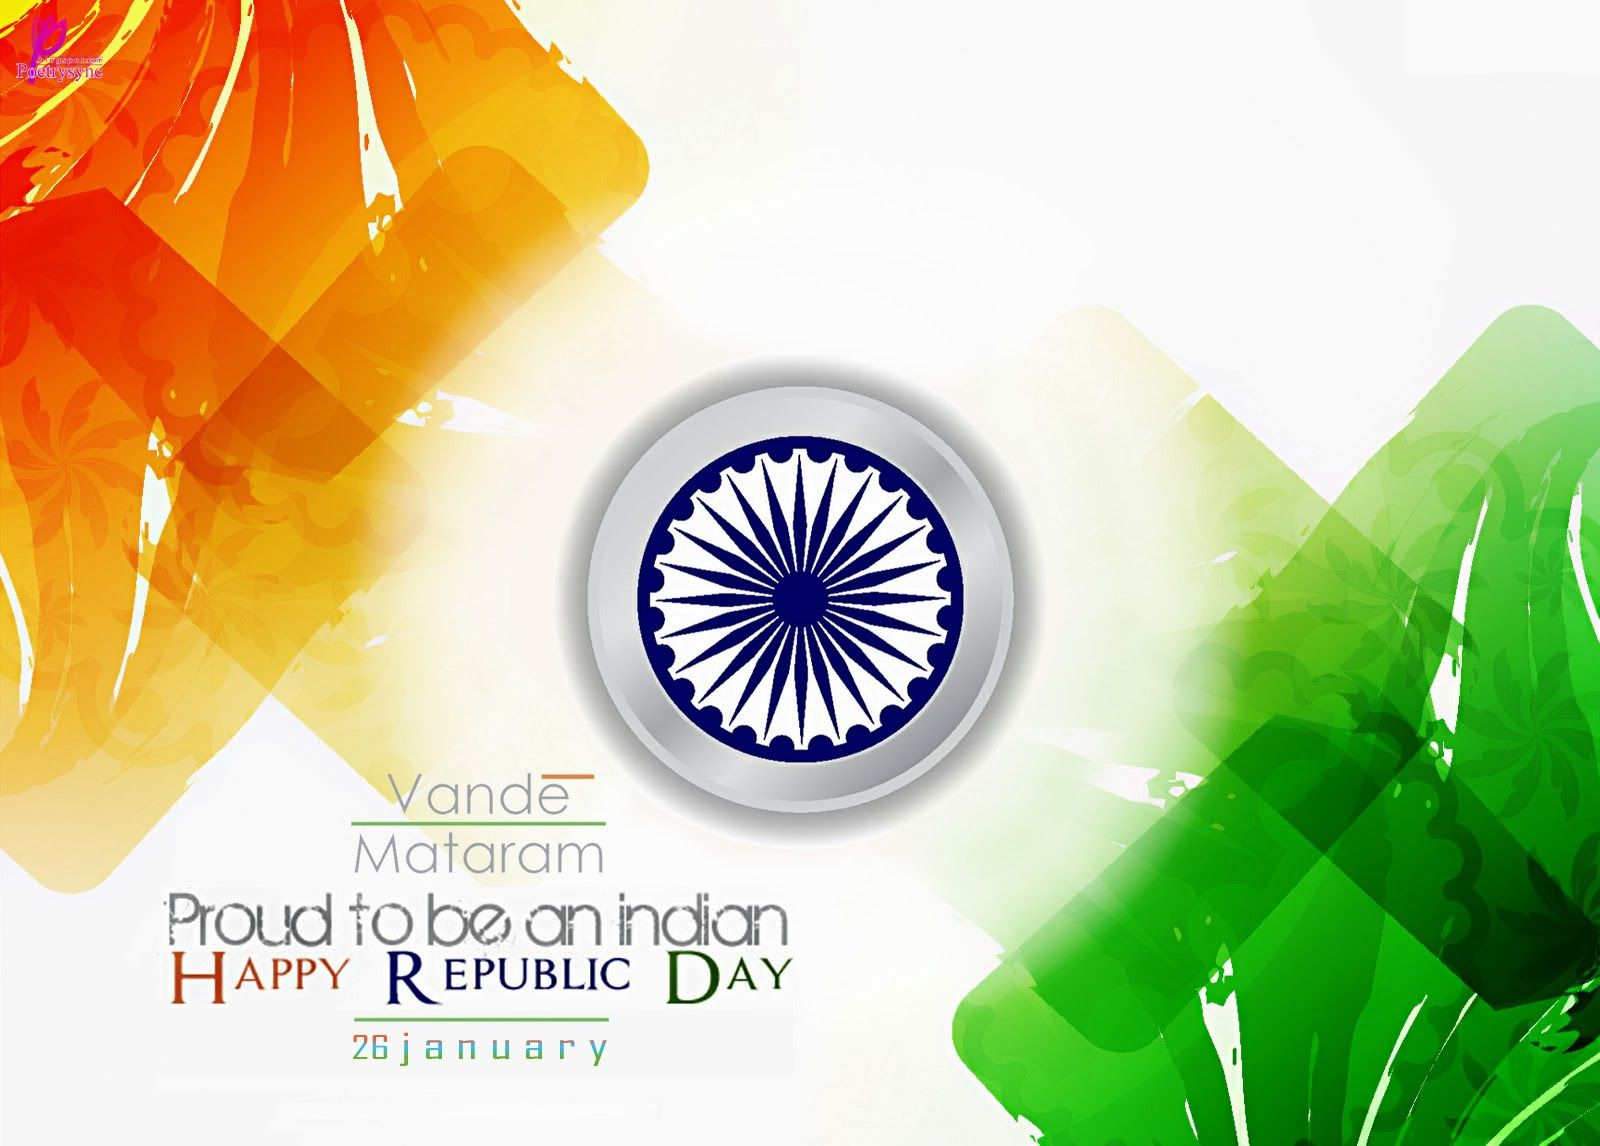 Pin On 26 January Republic Day Of India